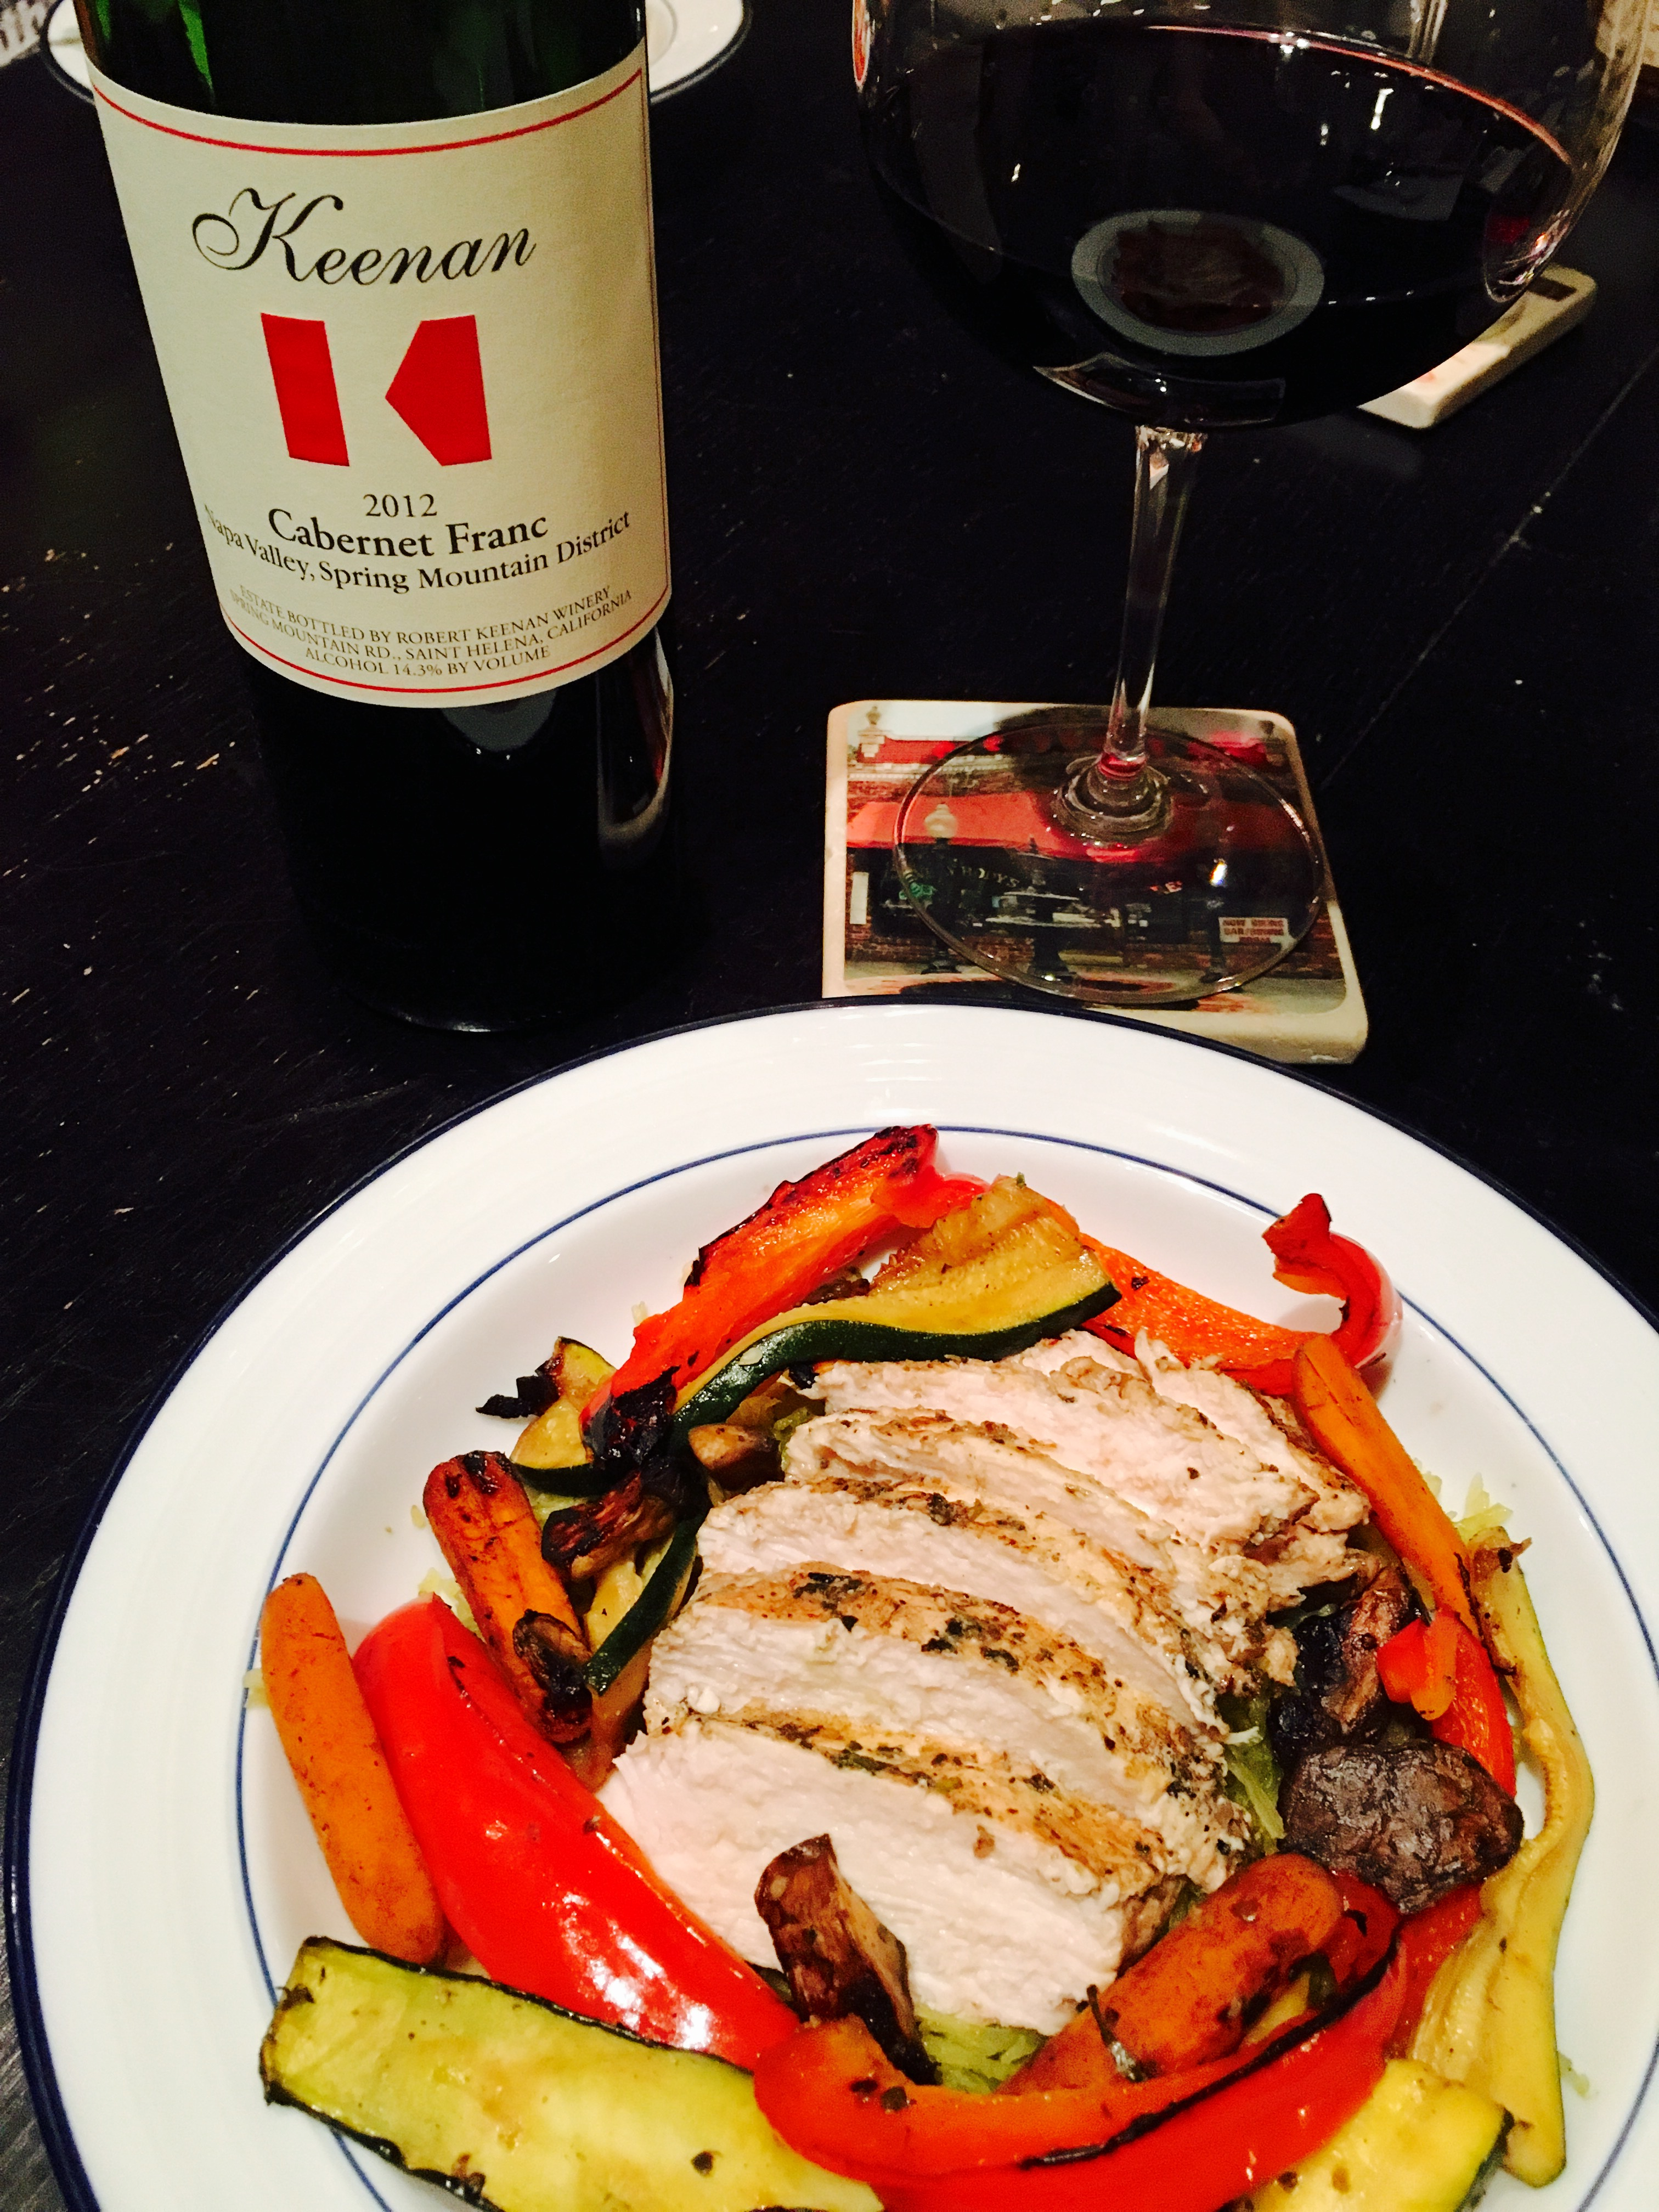 Balsamic chicken with grilled veggies and Keenan wine